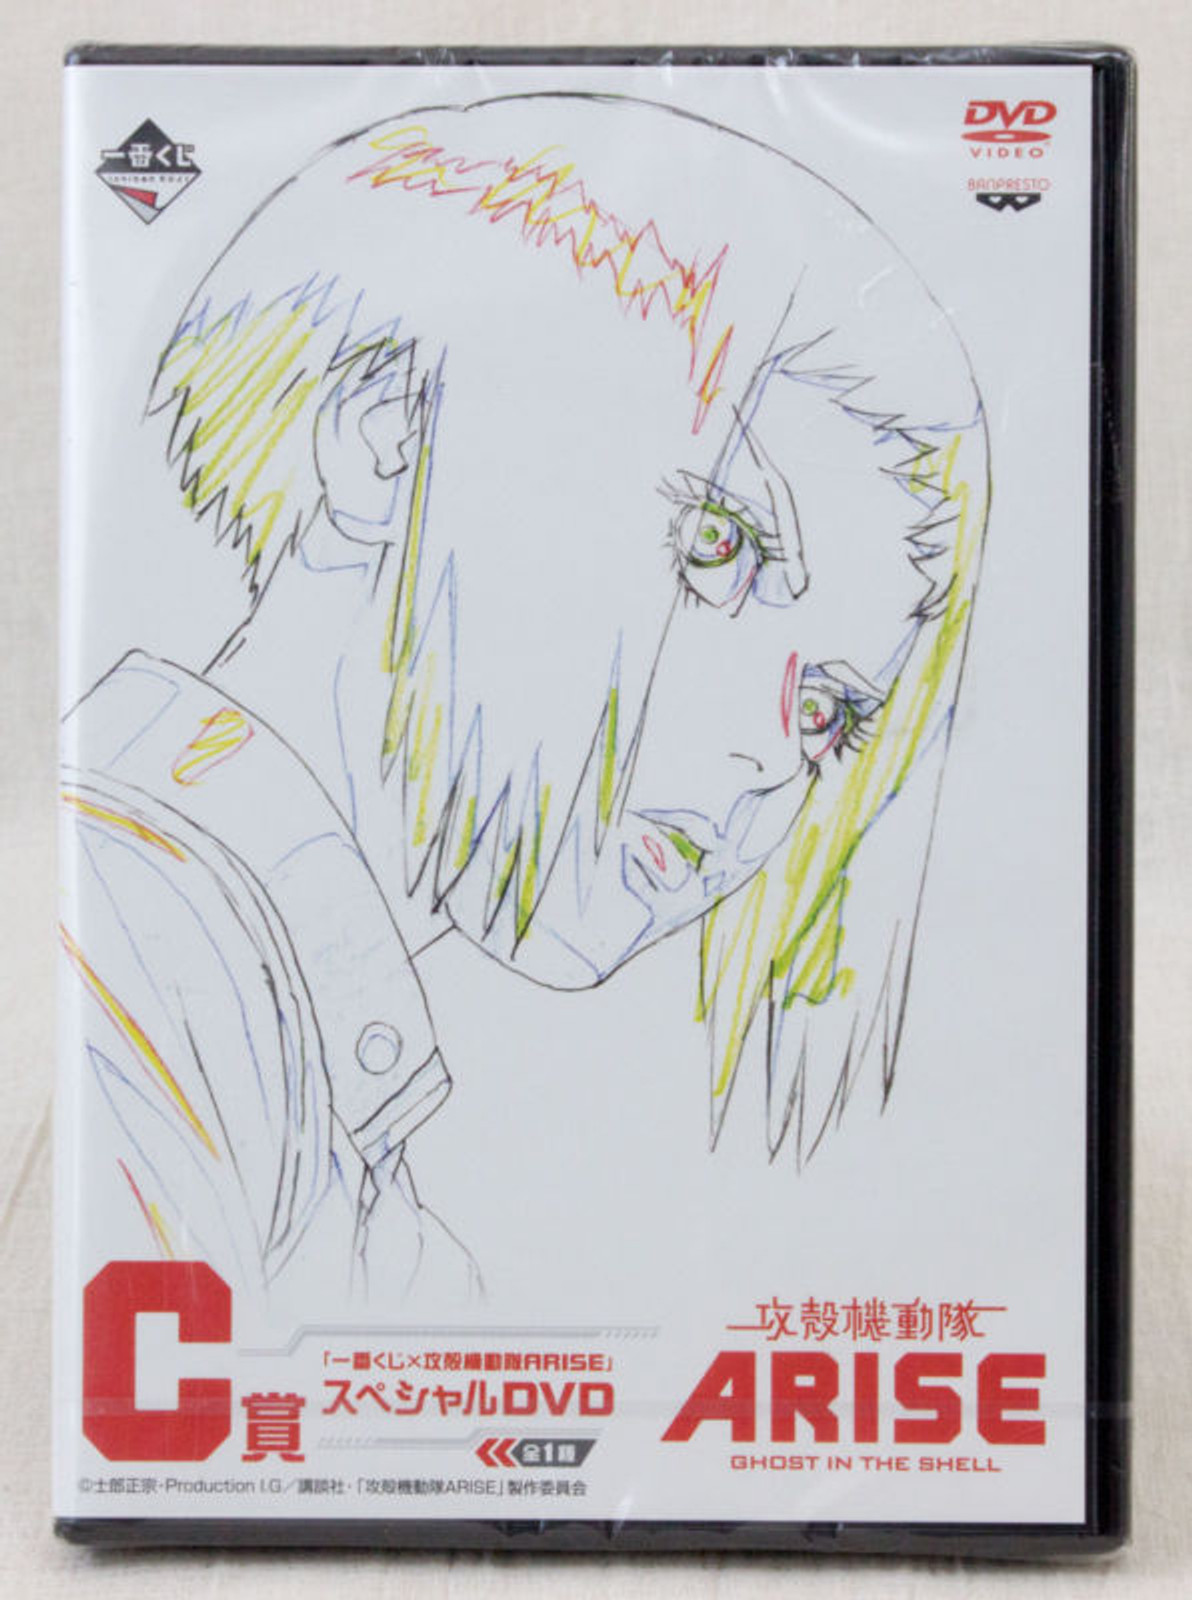 Ghost in the Shell ARISE Special DVD 16min IIchiban Kuji Banpresto JAPAN ANIME